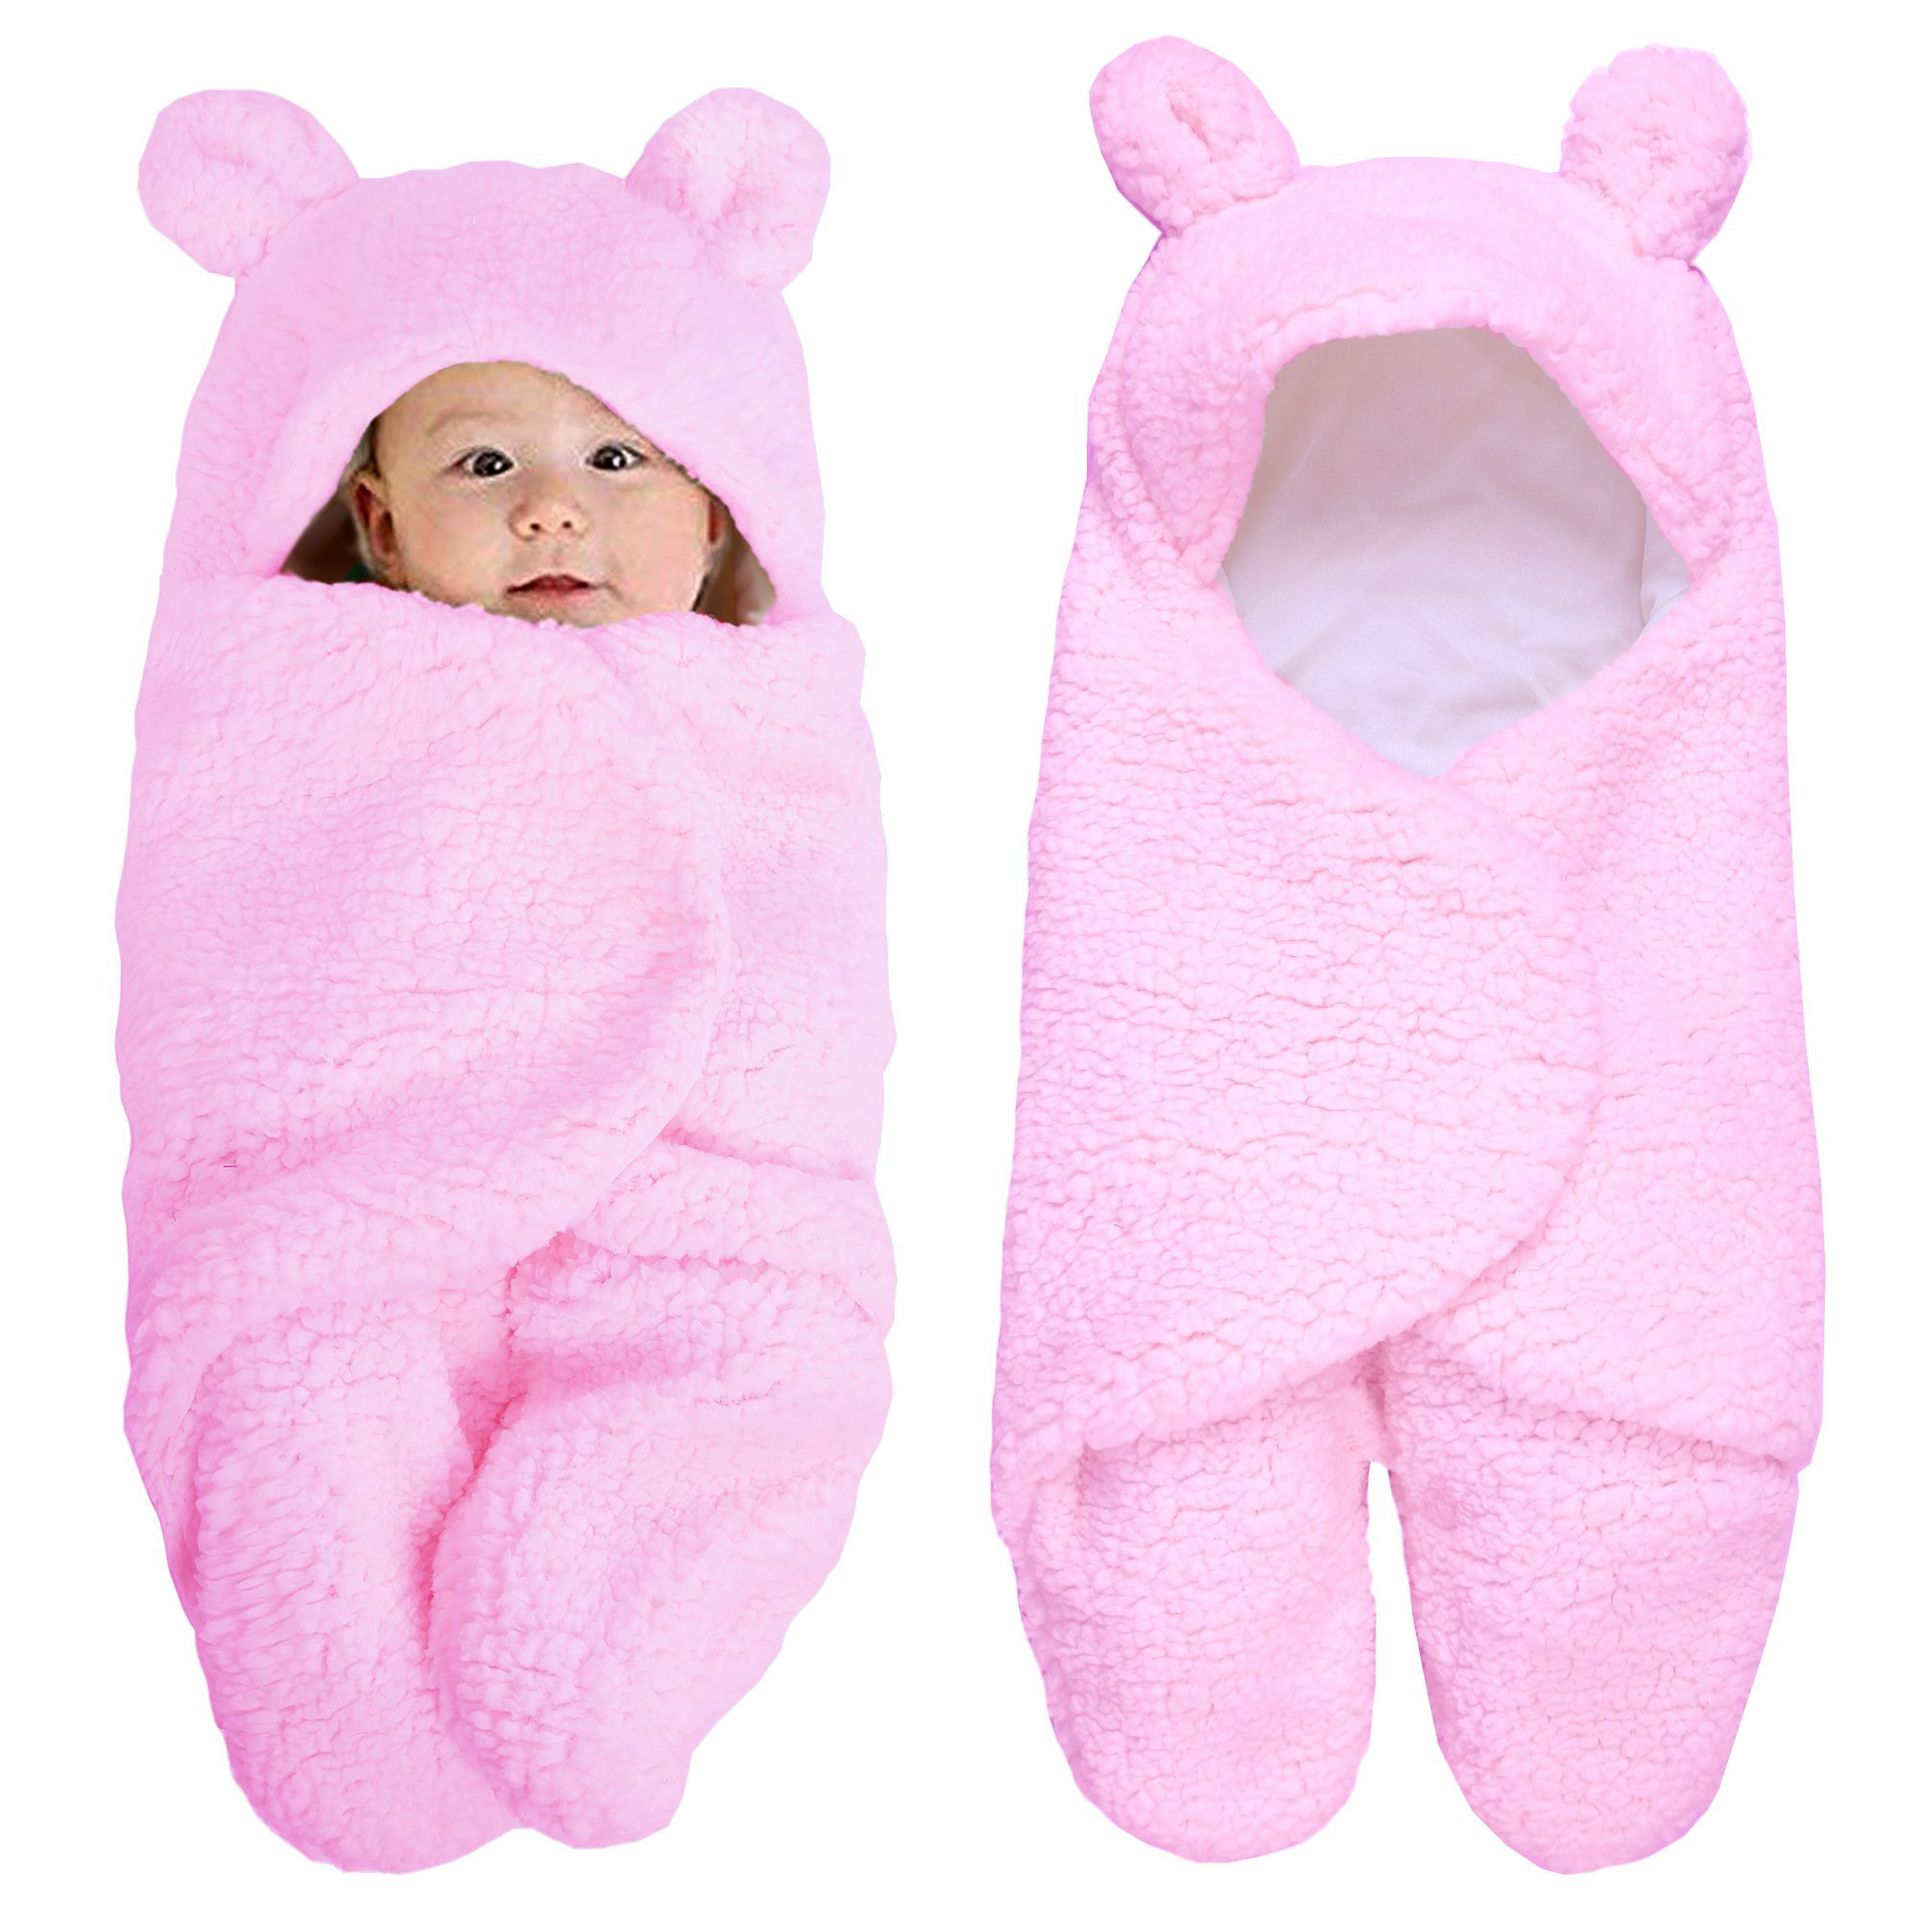 0-6 Months Winter Autumn Baby Sleeping Bag Envelope Newborn Baby Wrap Cute Solid Baby Velvet Cotton Bear Swaddle Blanket